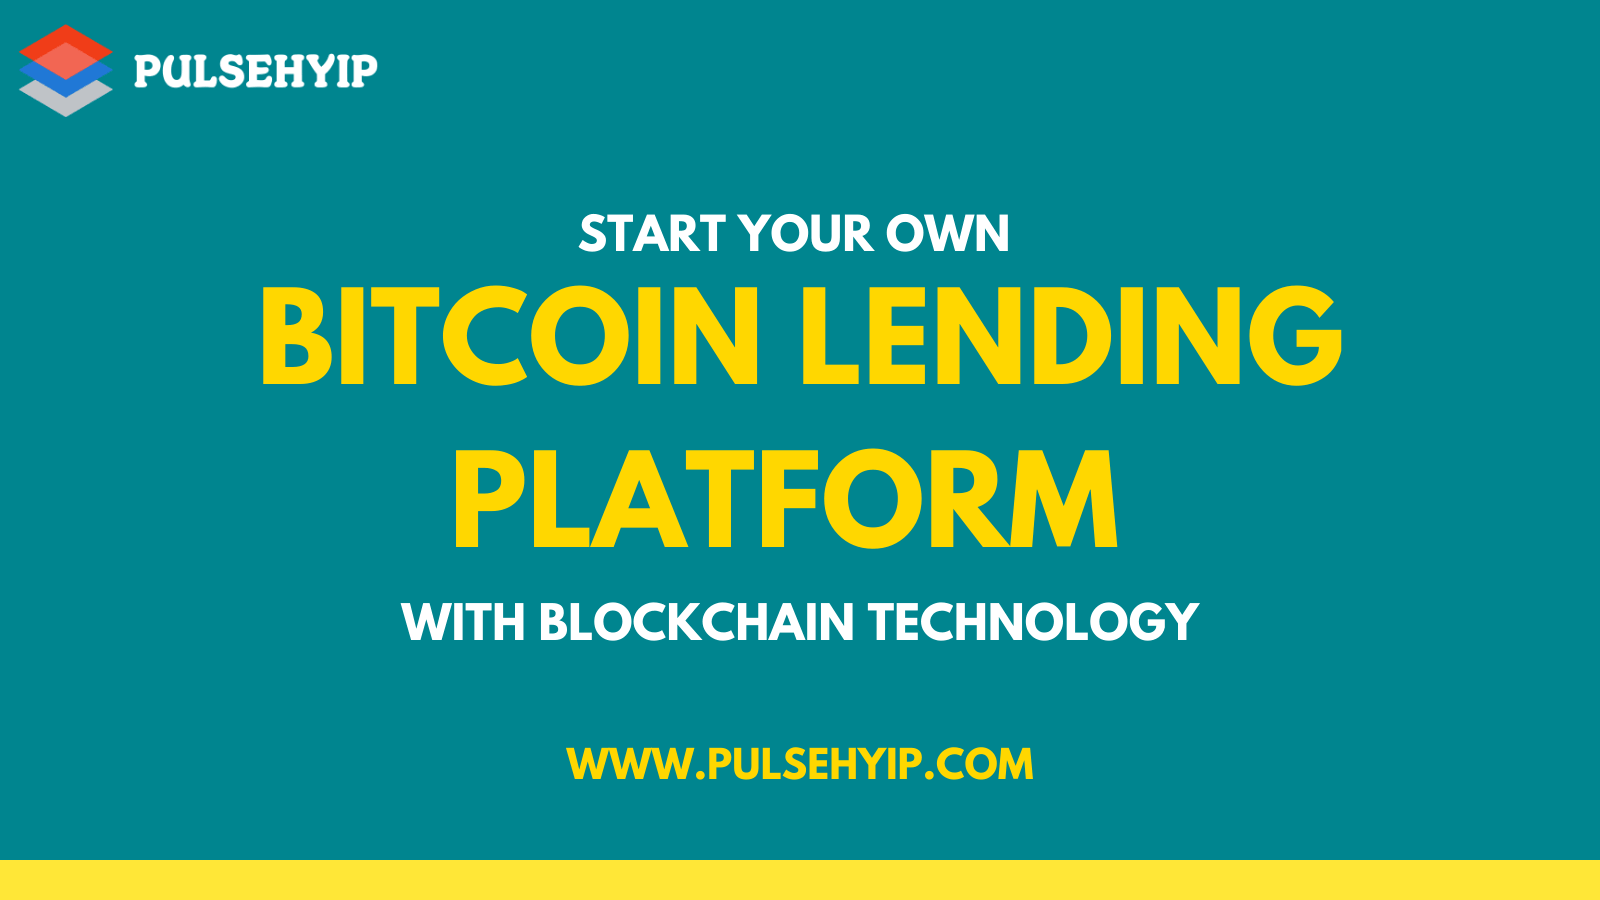 A New Peer-to-Peer Bitcoin Lending Script with Blockchain Technology